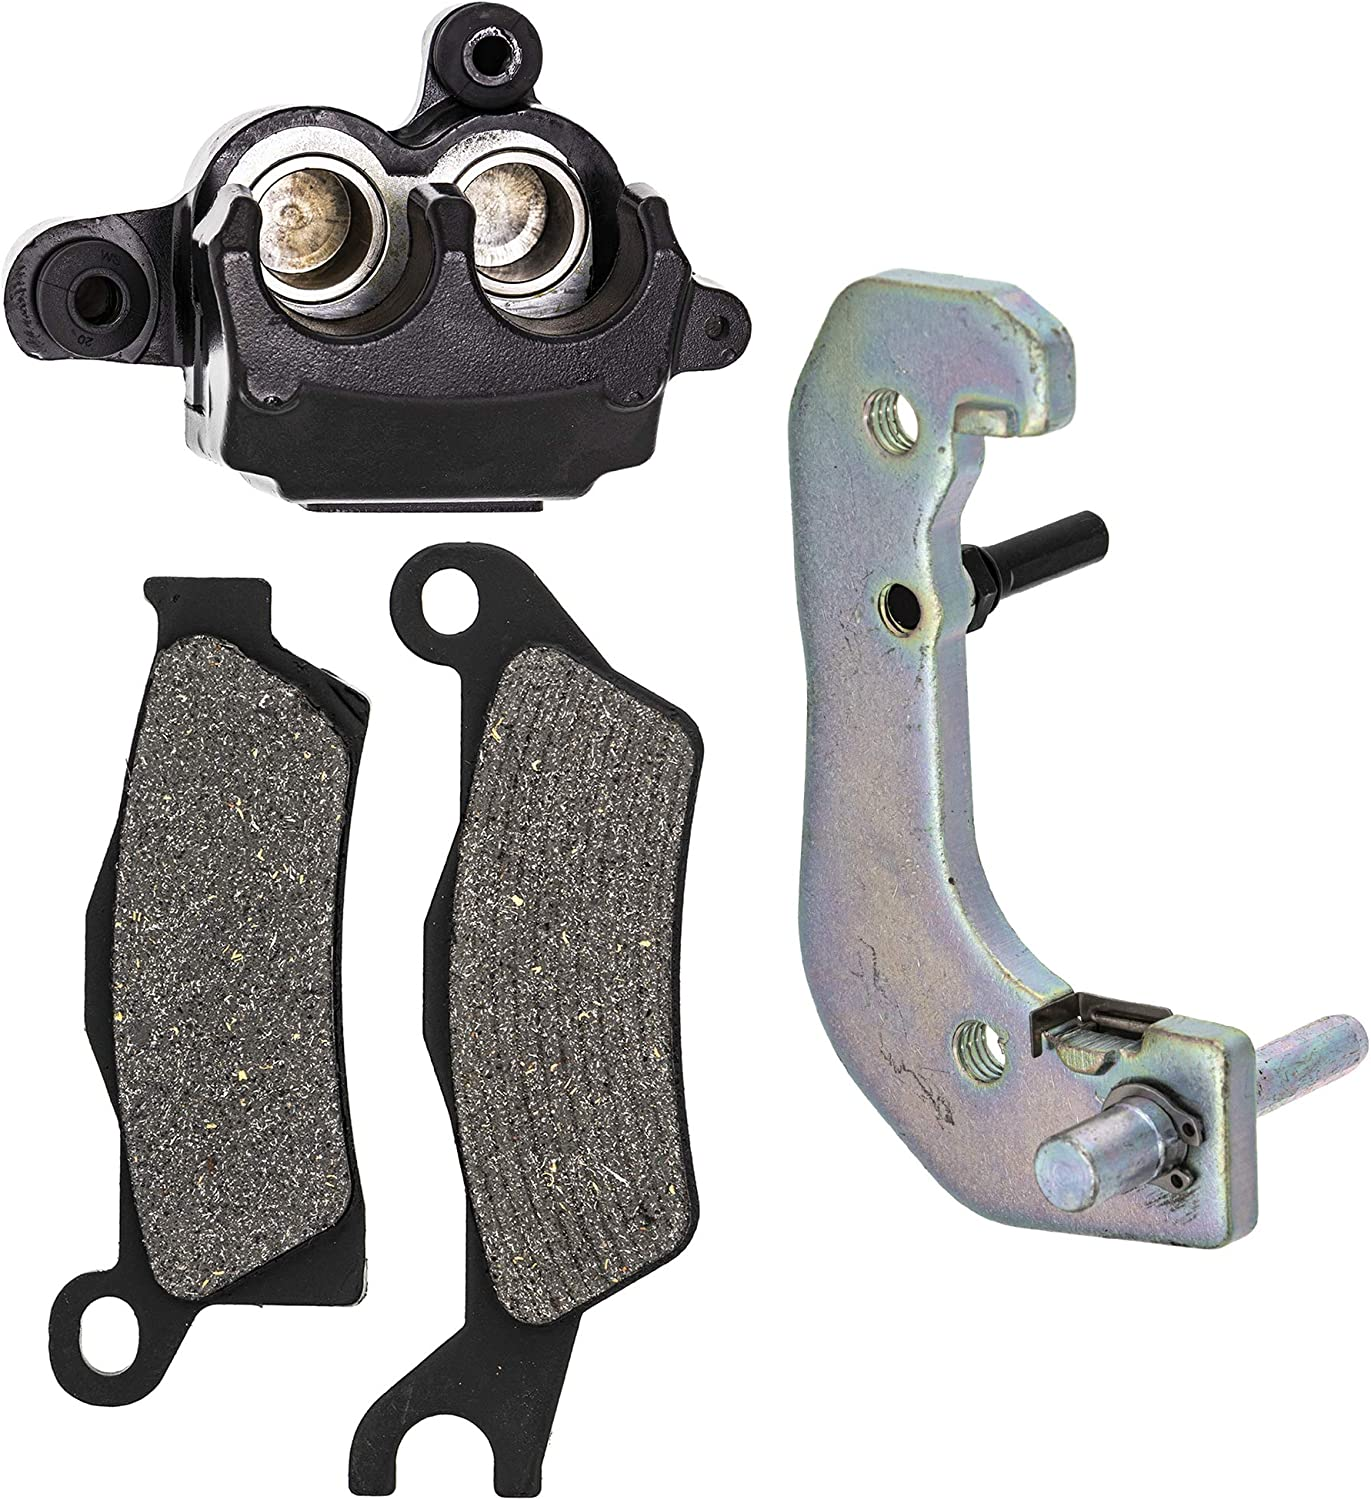 NICHE Front Right Hand Brake Caliper Kit For 2012-2019 Can-Am Outlander 800 650 850 1000 800R Outlander L 500 450